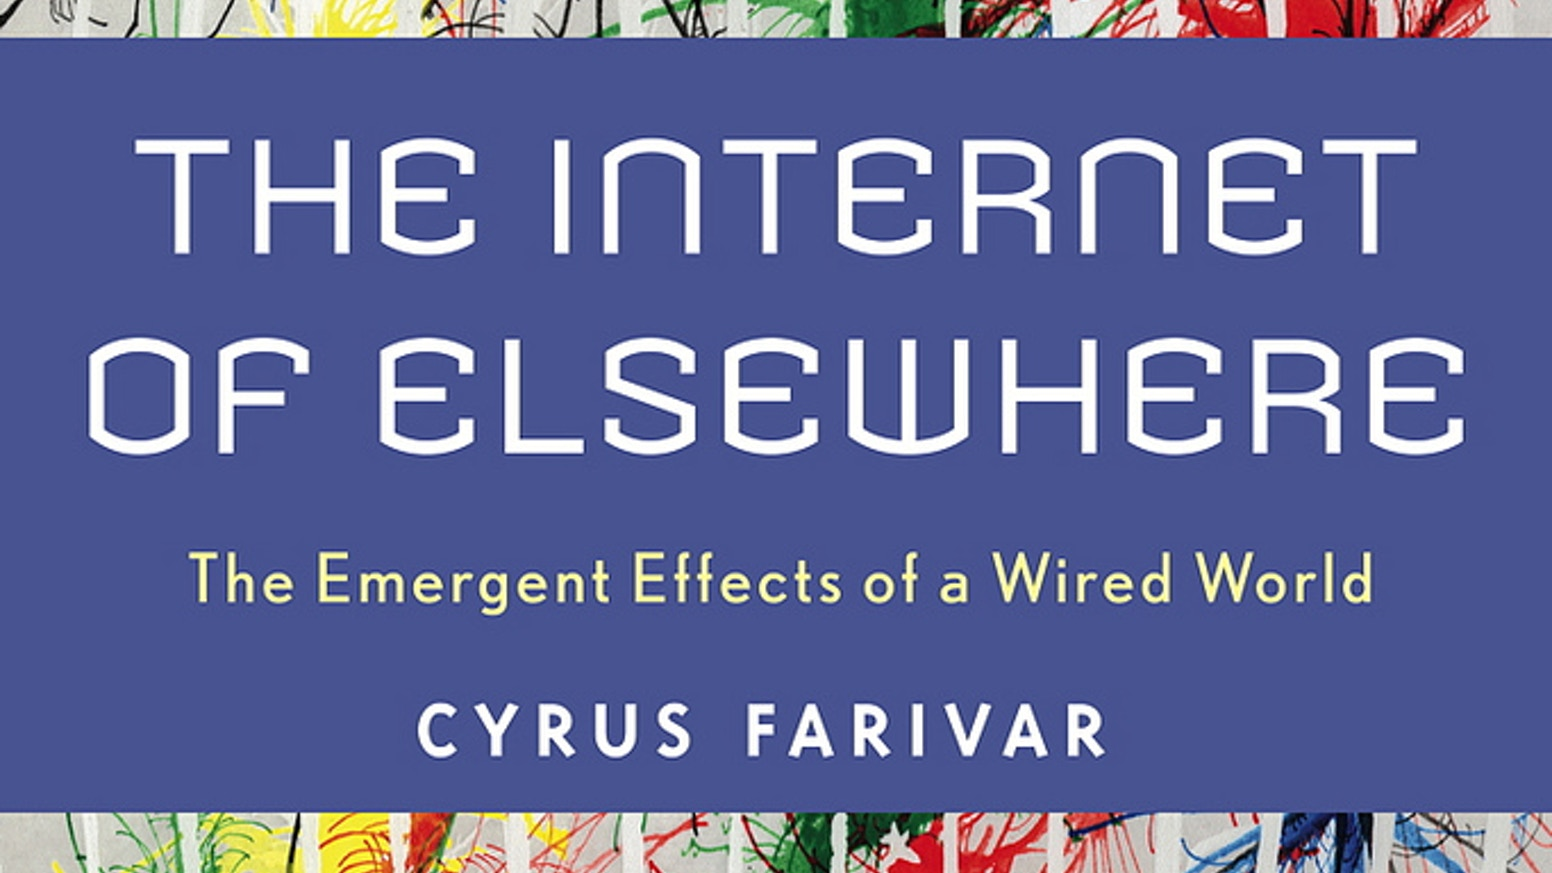 Quot The Internet Of Elsewhere Quot European Book Tour By Cyrus border=